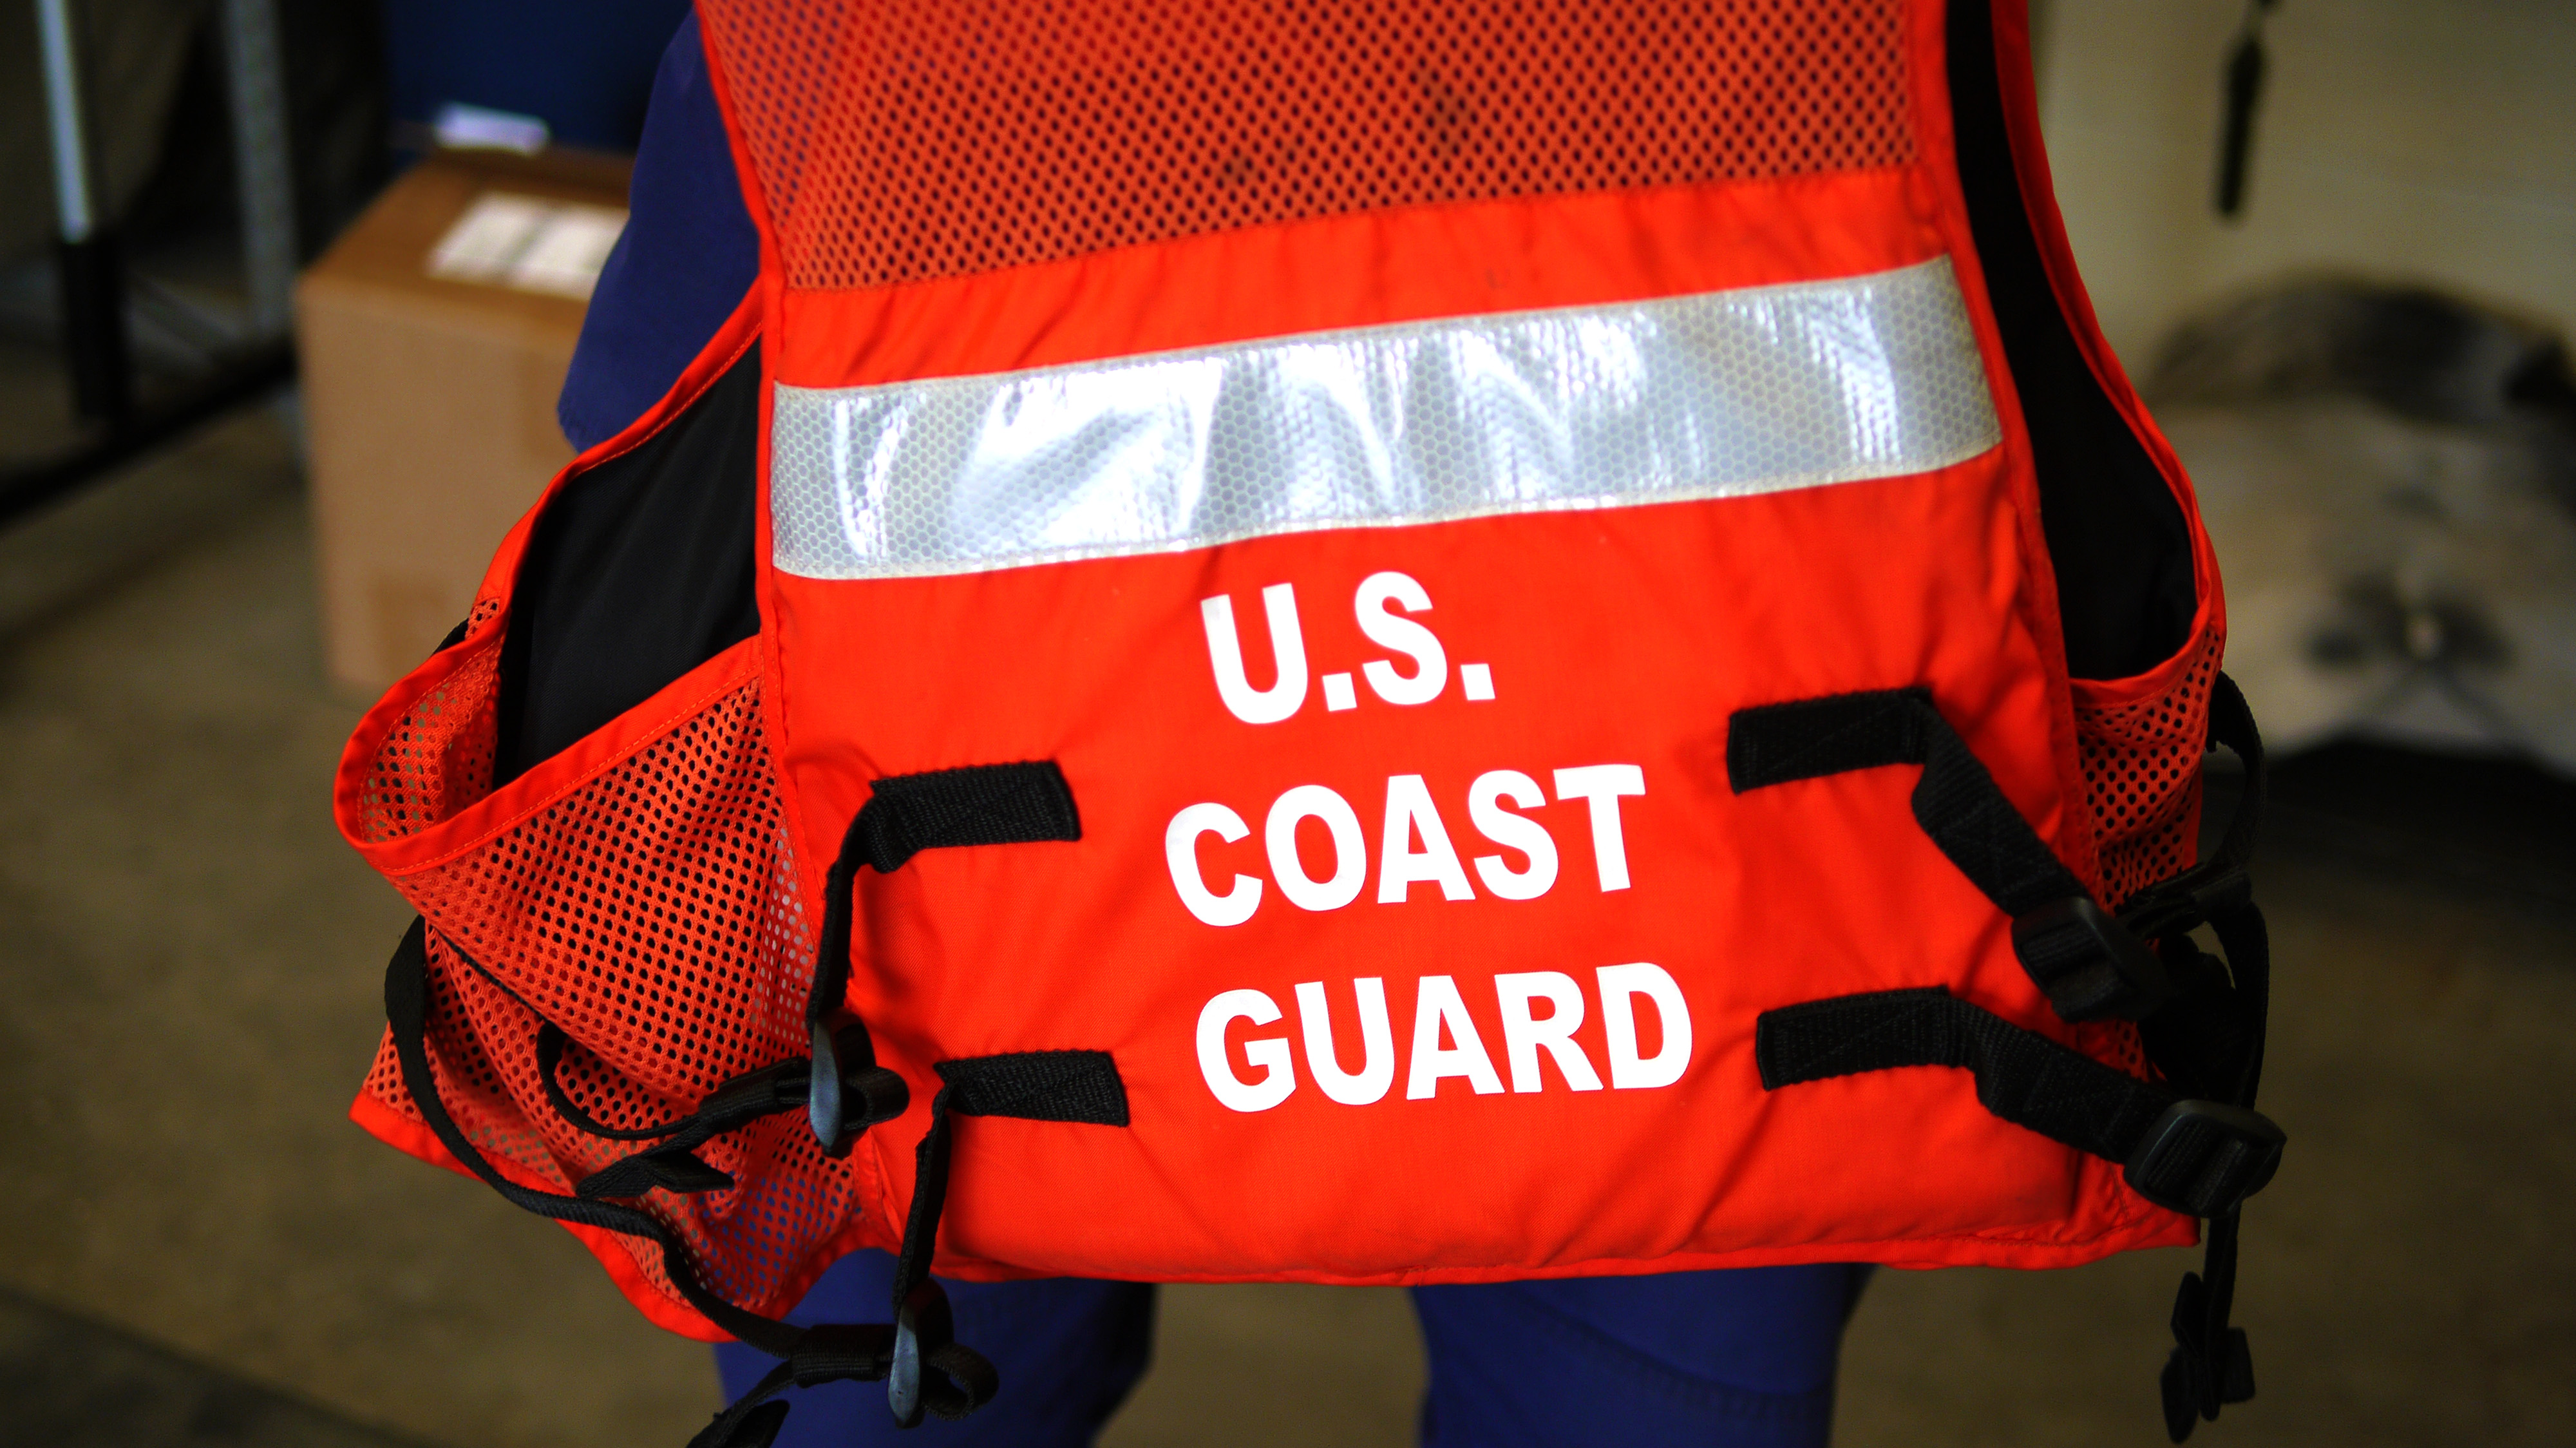 Summer Boating Safety Tips From the US Coast Guard